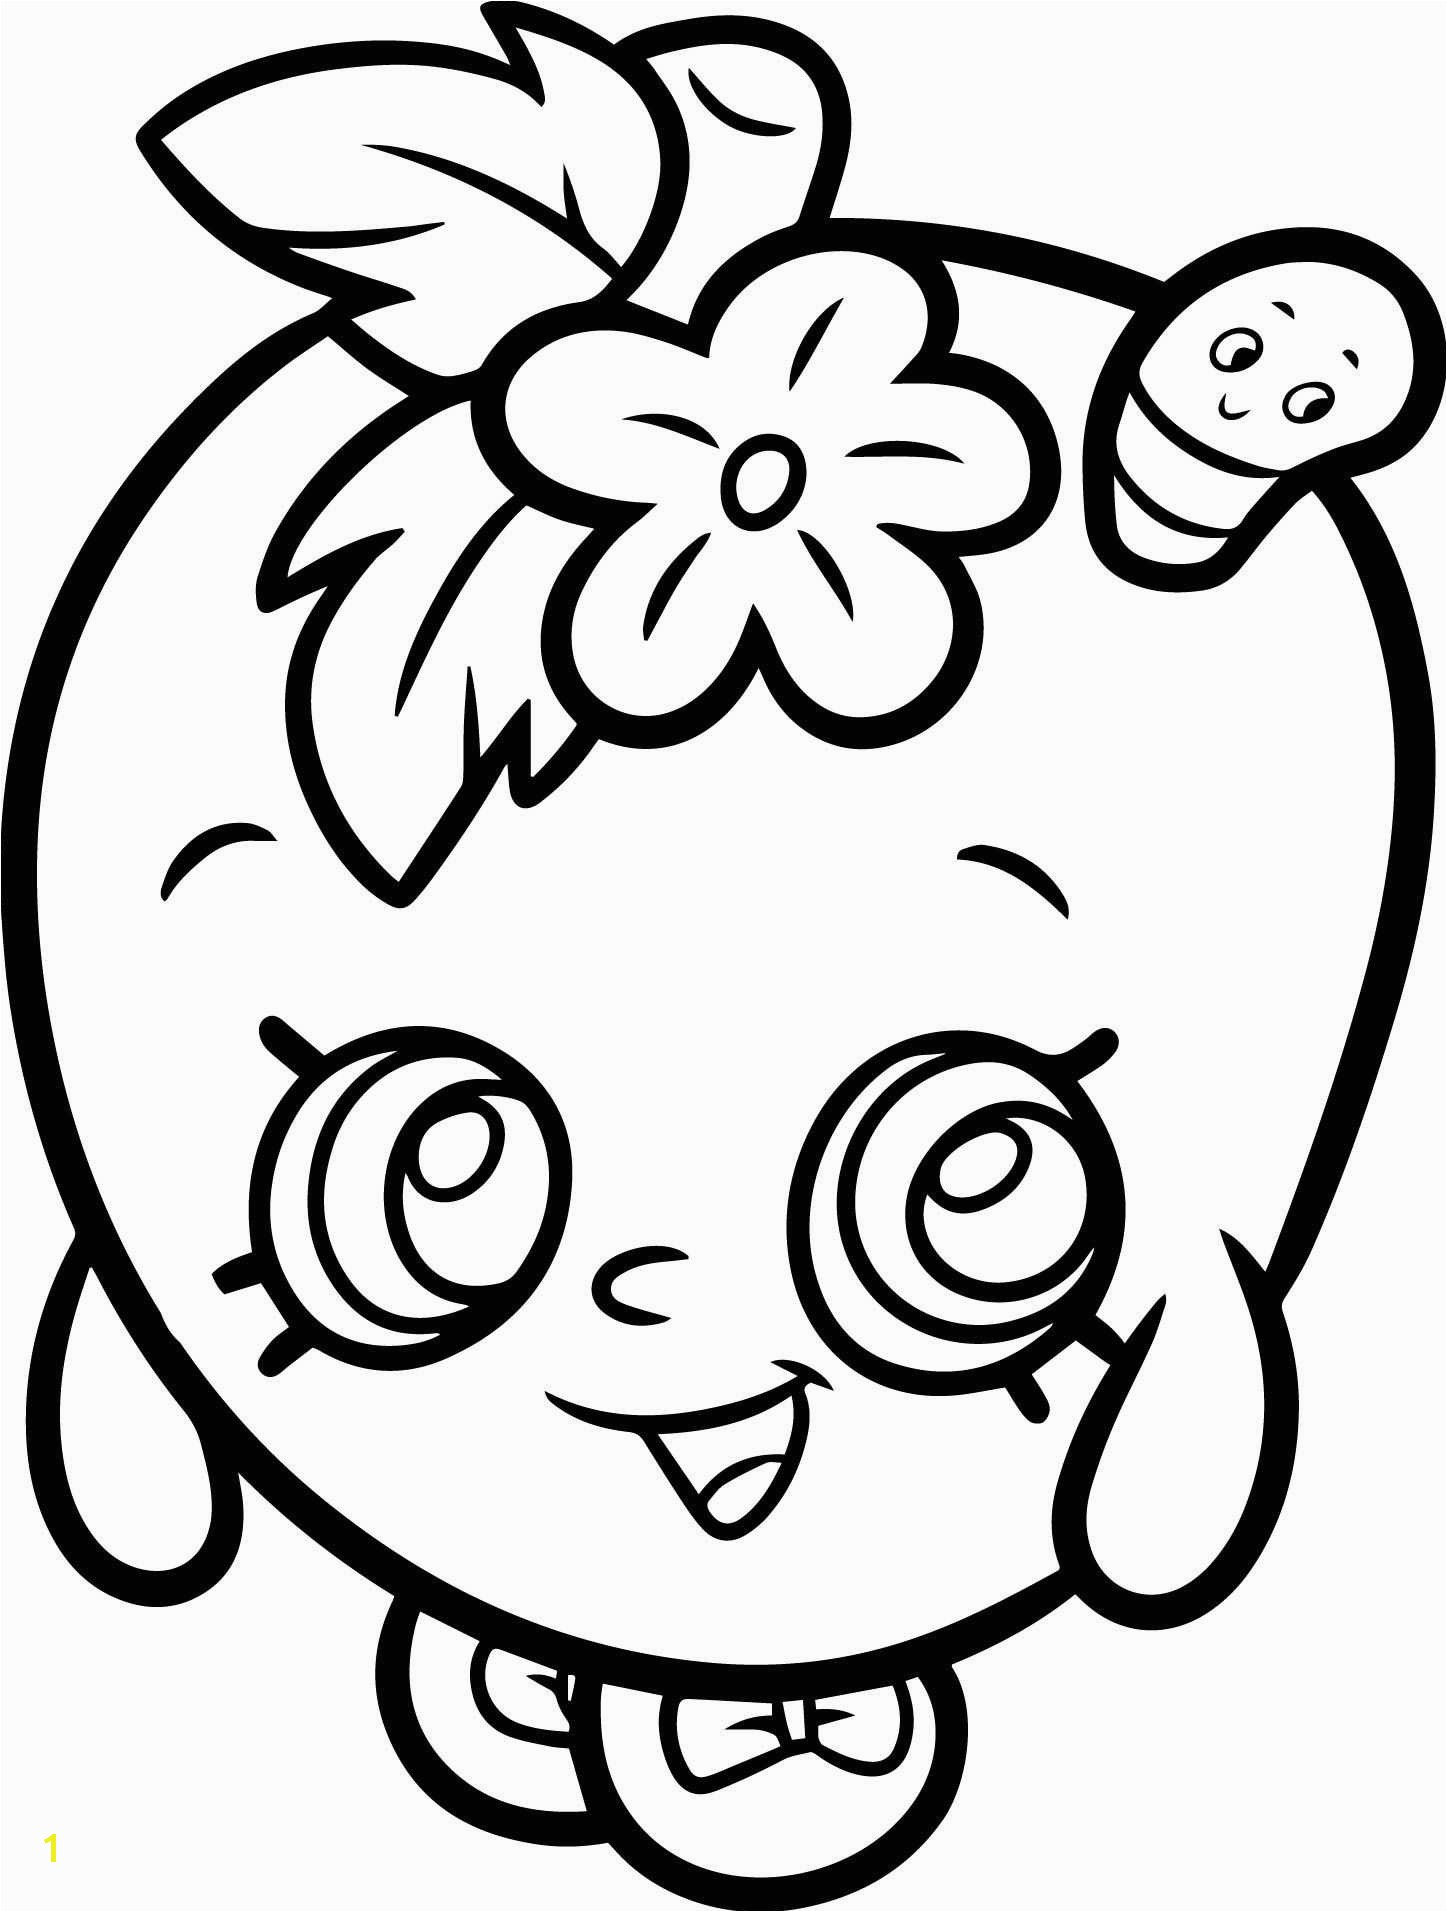 Apple Blossom Coloring Page Apple Blossom Shopkin Coloring Page & Plete Guide Example